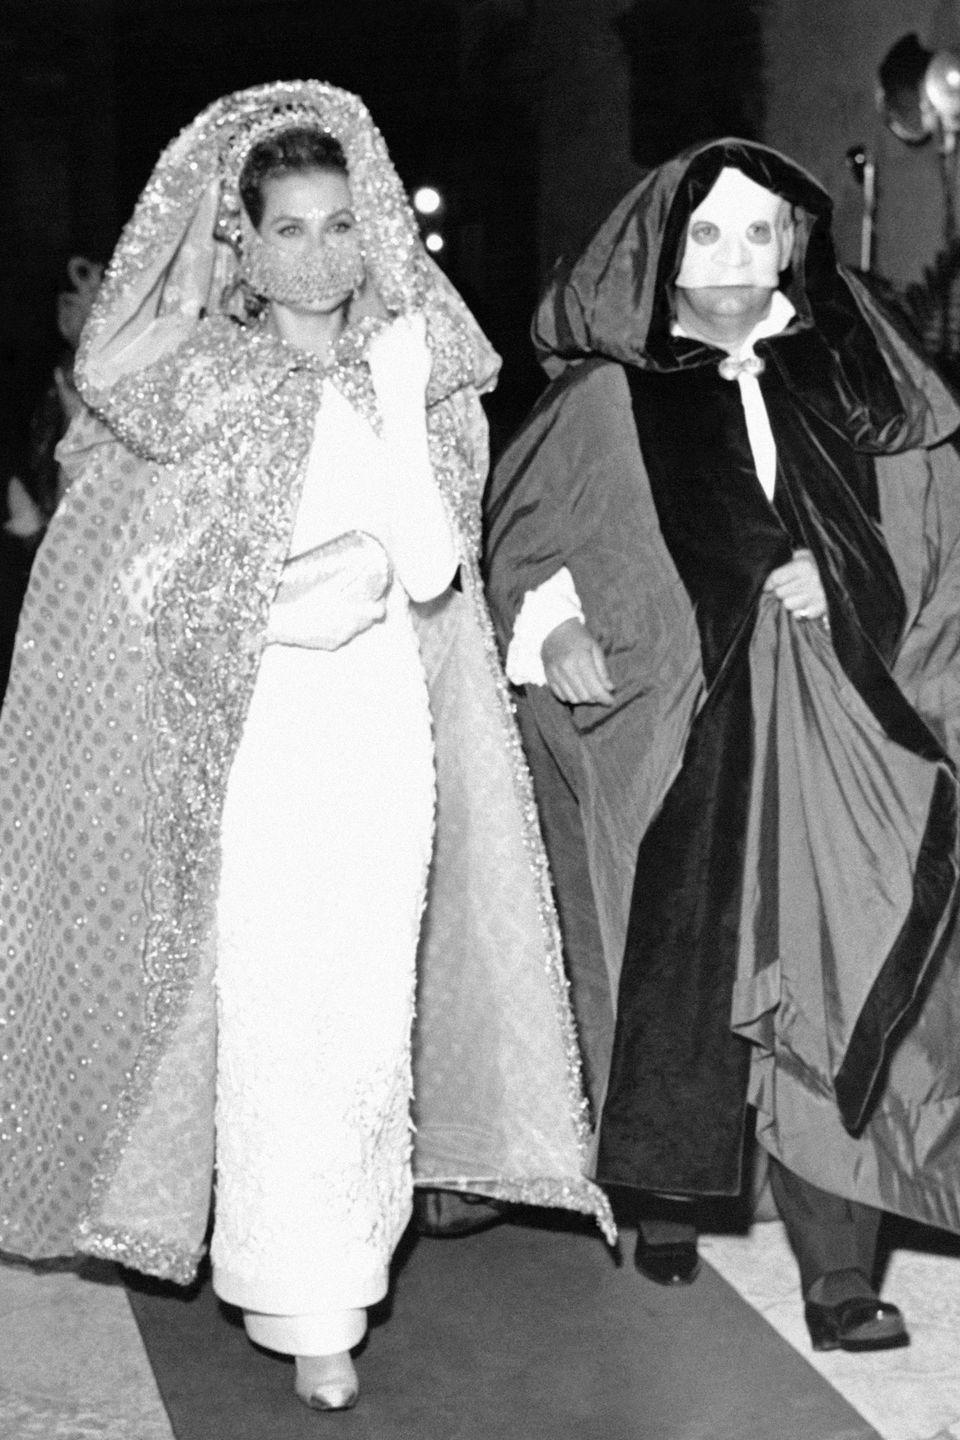 <p>Princess Grace and Prince Rainier of Monaco arriving in masks to a costume ball in Venice, Italy.</p>